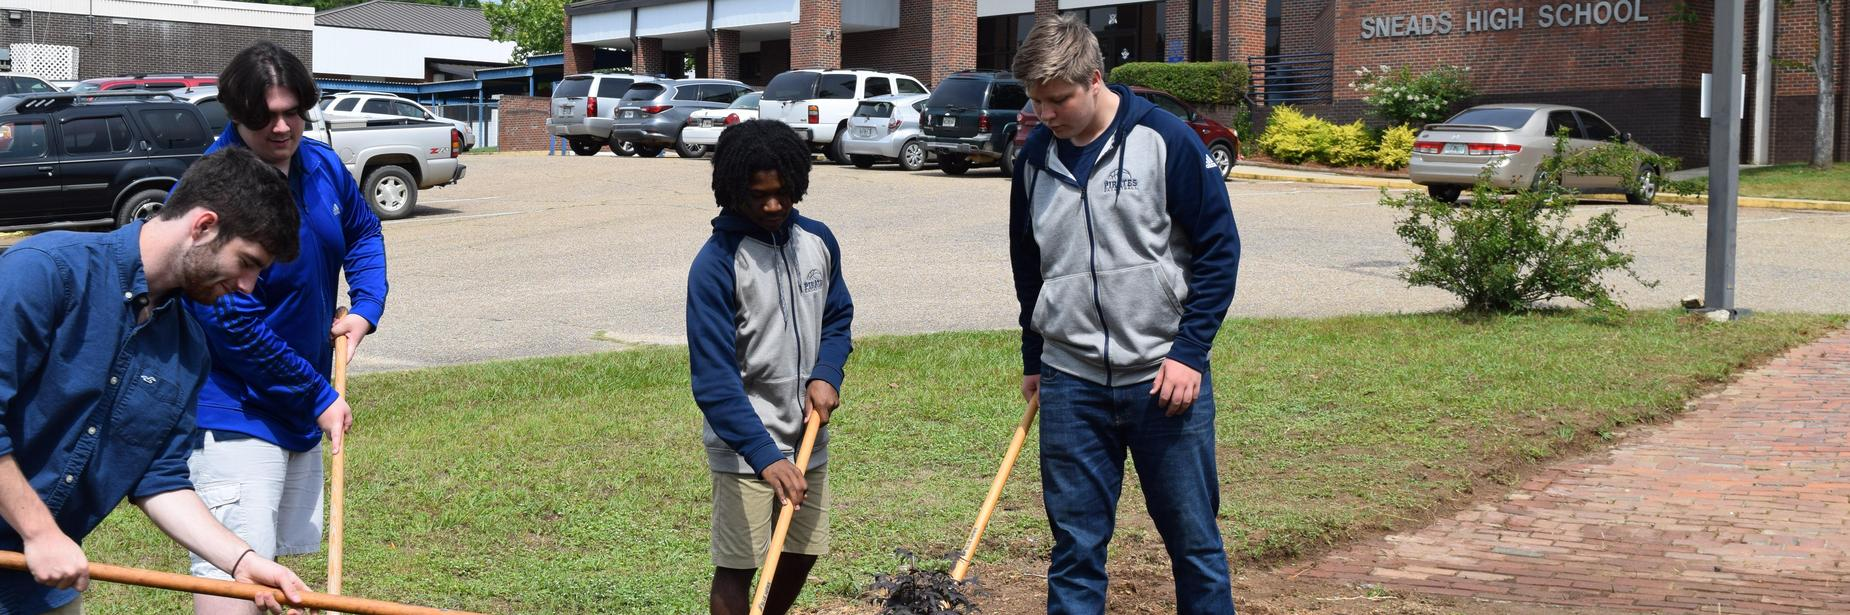 shs students cleaning up around campus